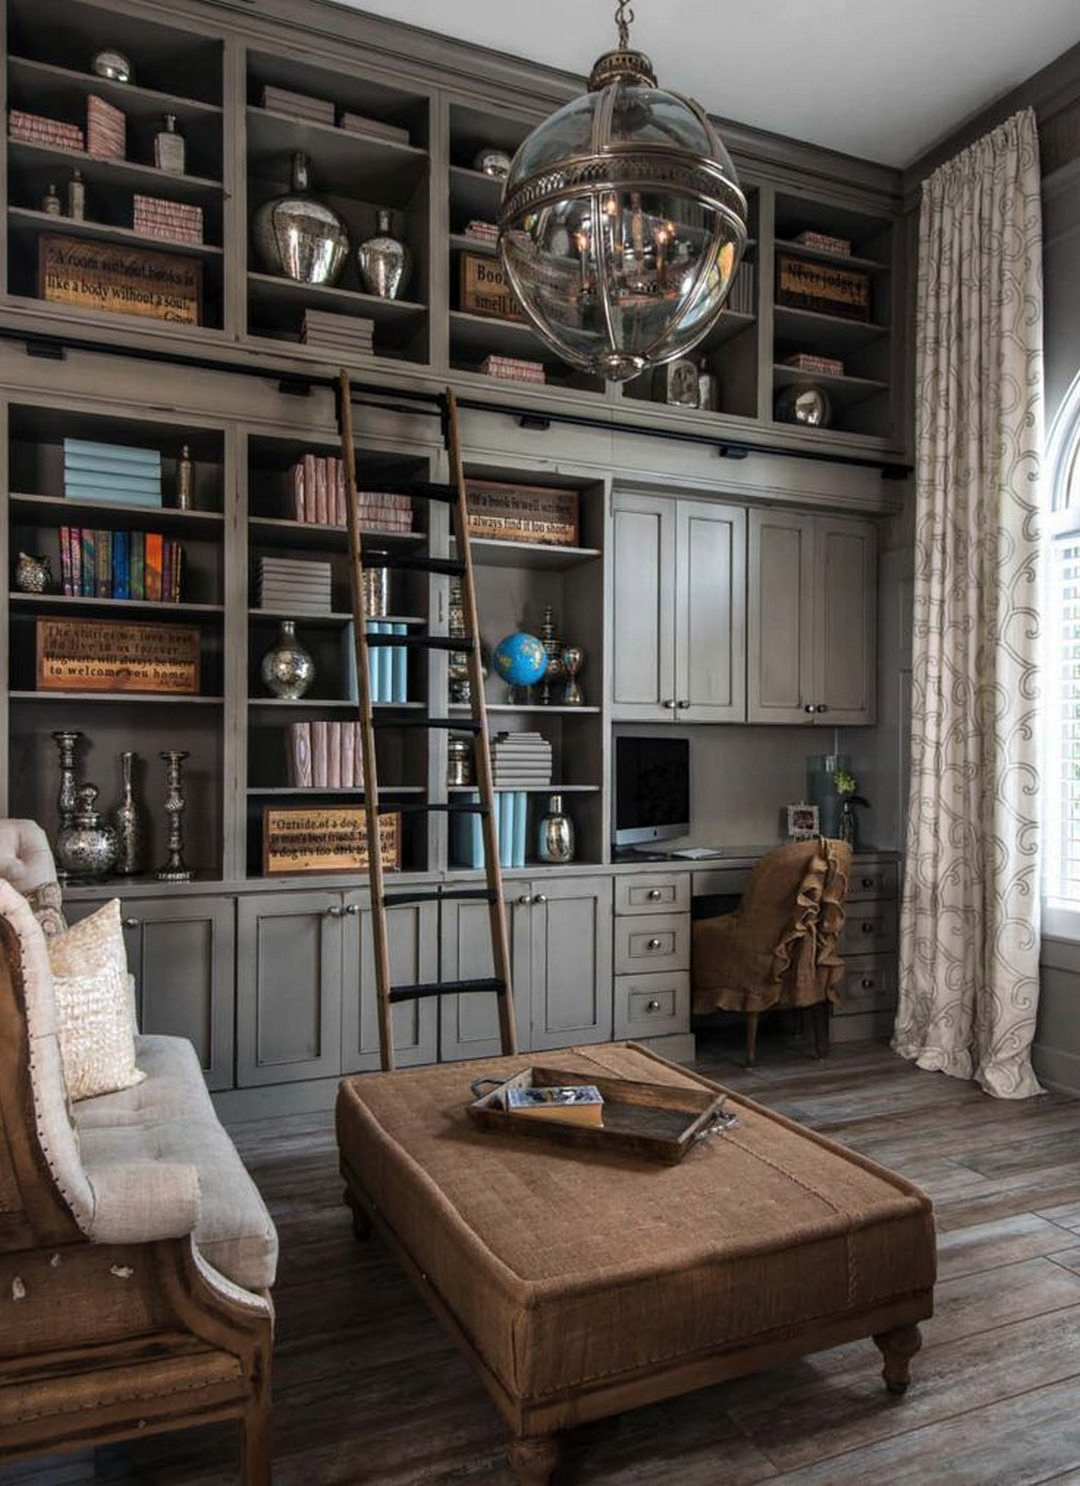 Home Library Office: 81 Cozy Home Library Interior Ideas